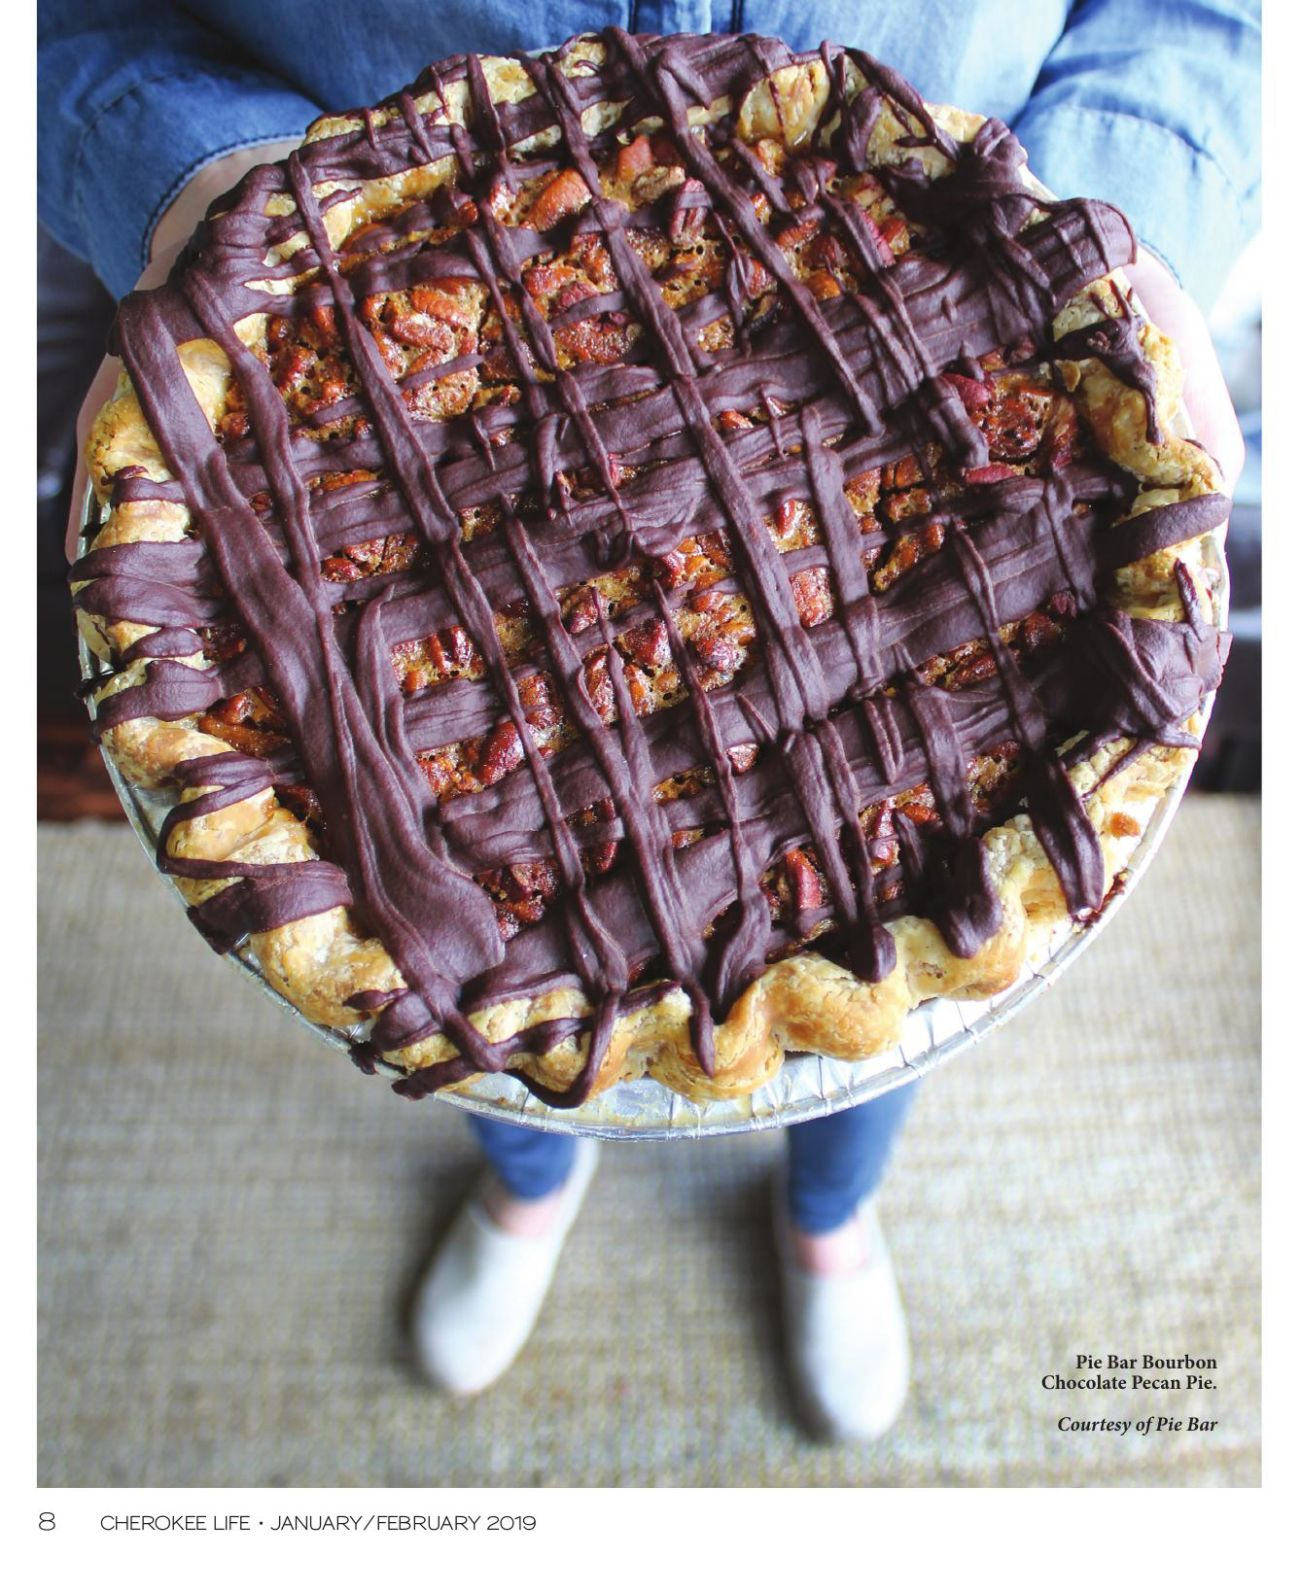 Created with care: Pie Bar